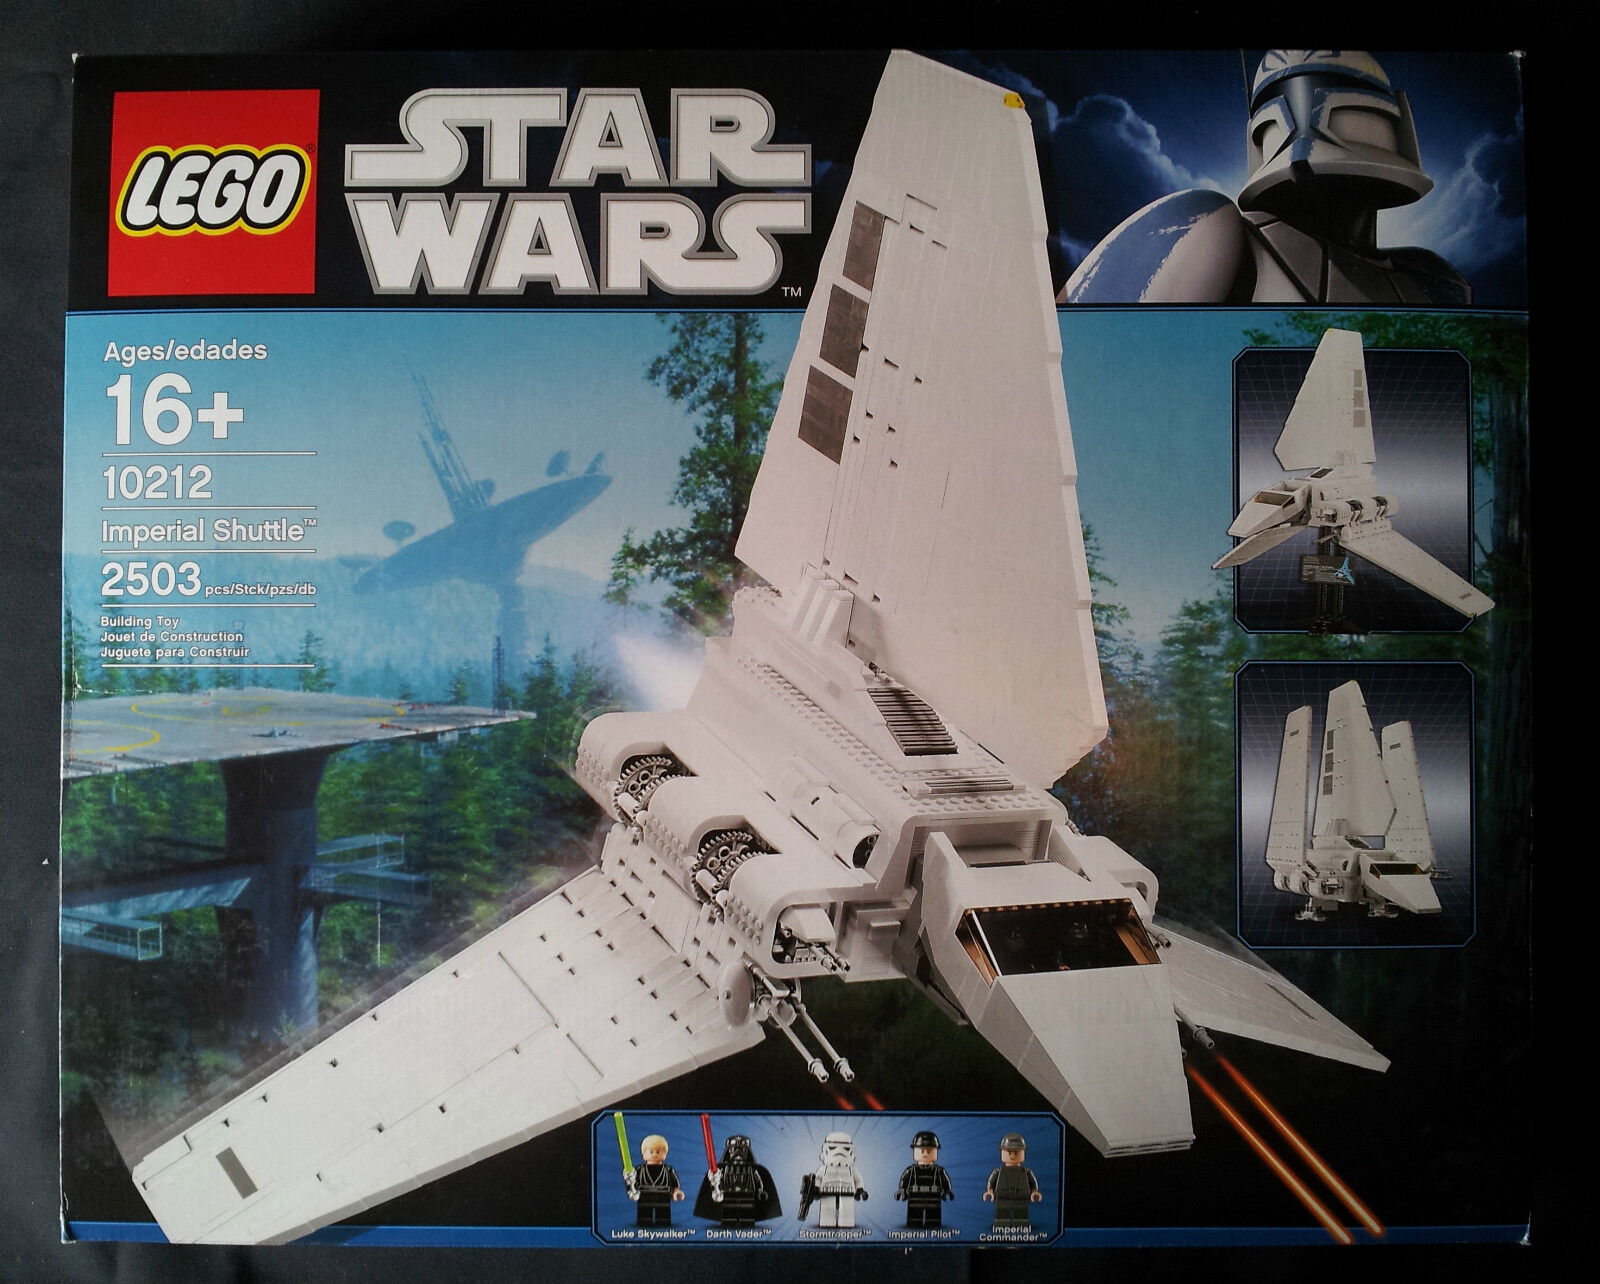 Lego star wars 10212-imperial  shuttle (ucs) nouveau sealed nouveau sealed  plus d'ordre